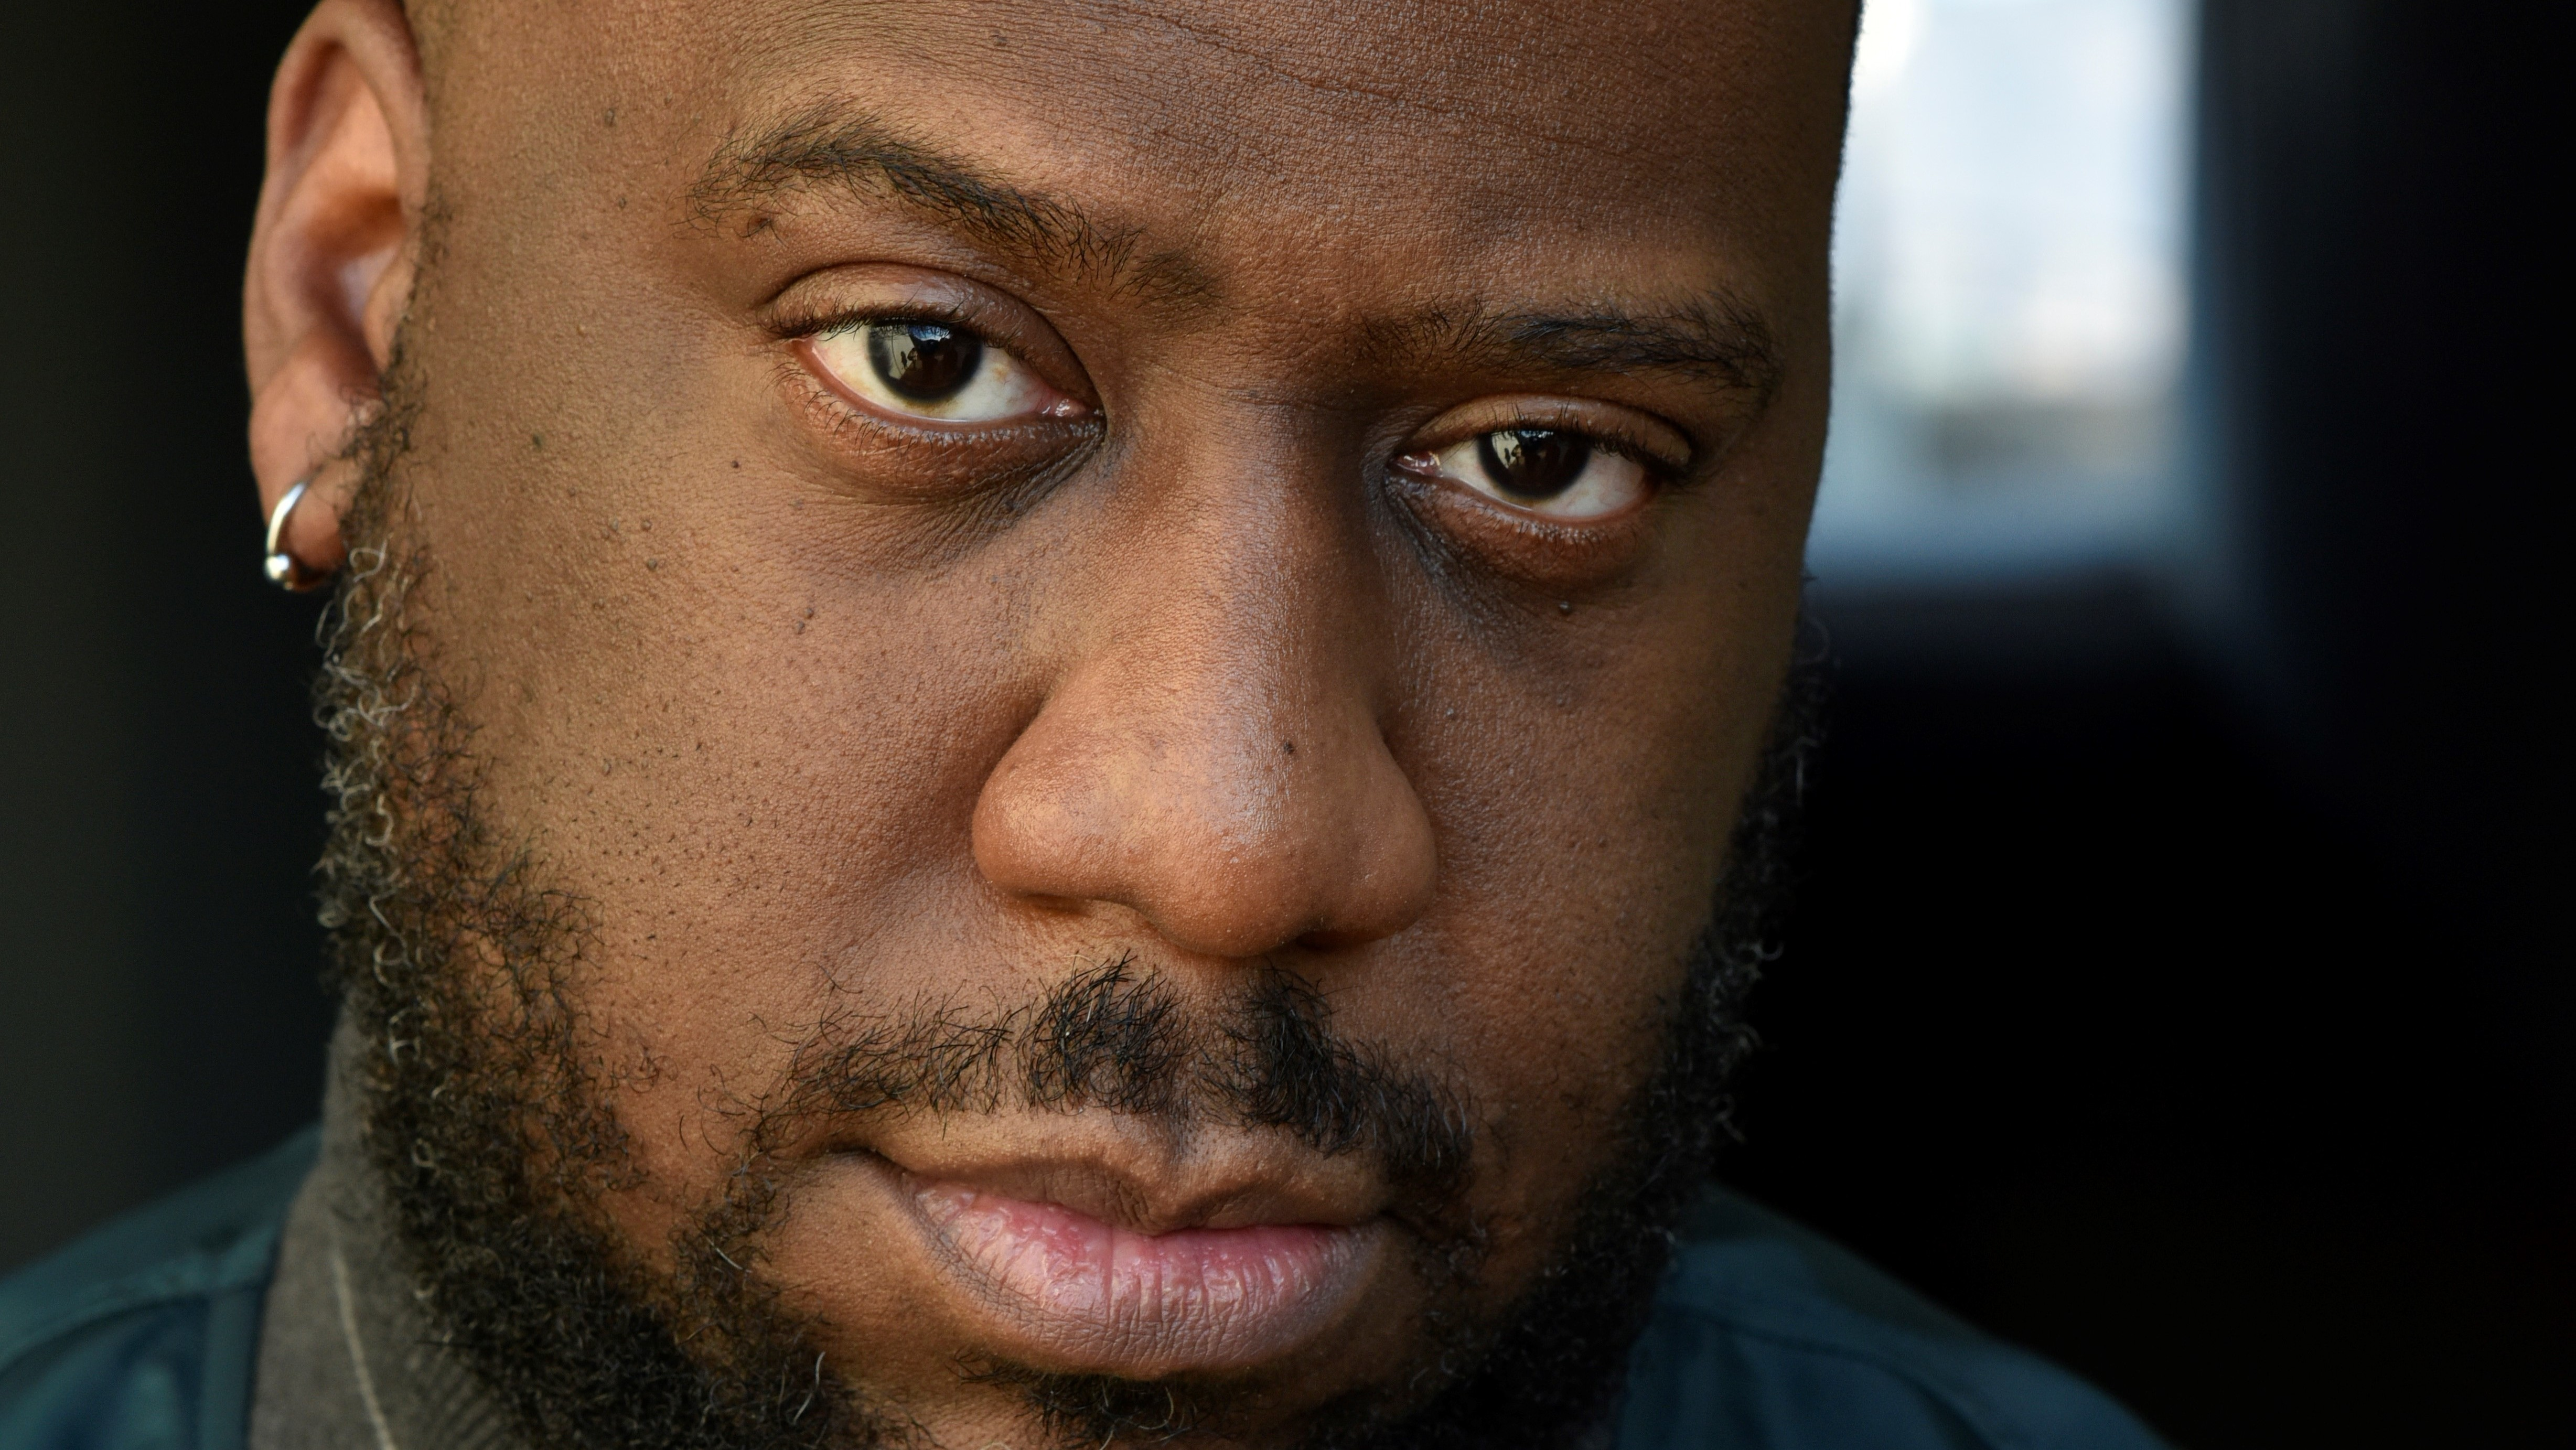 Robert Glasper On How To Get More Young People Into Jazz